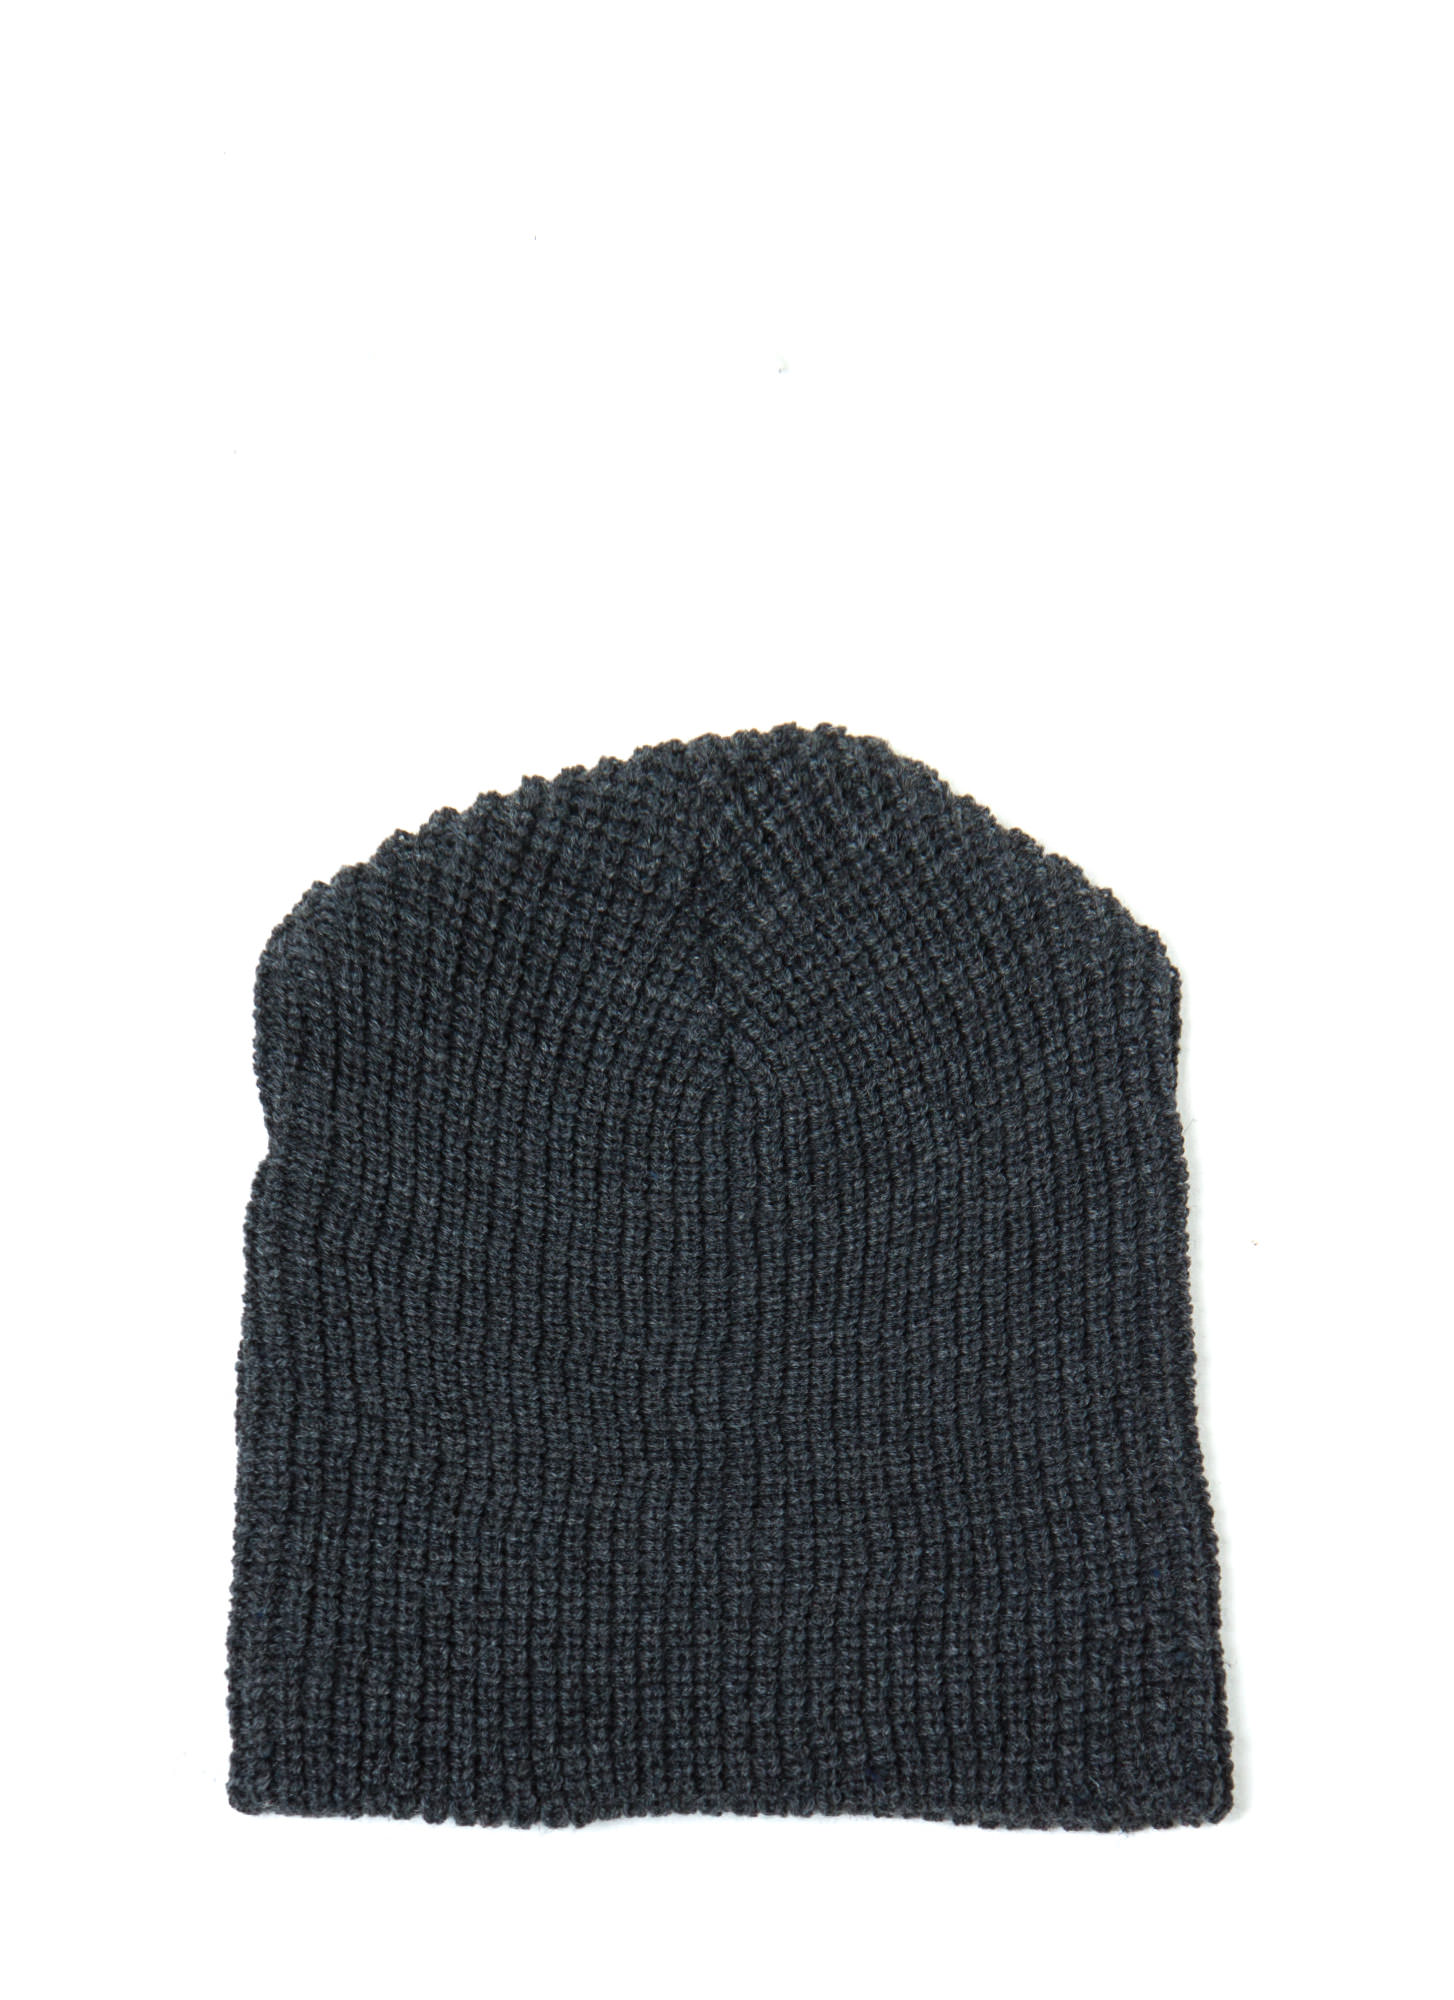 Heads Up Knit Beanie CHARCOAL